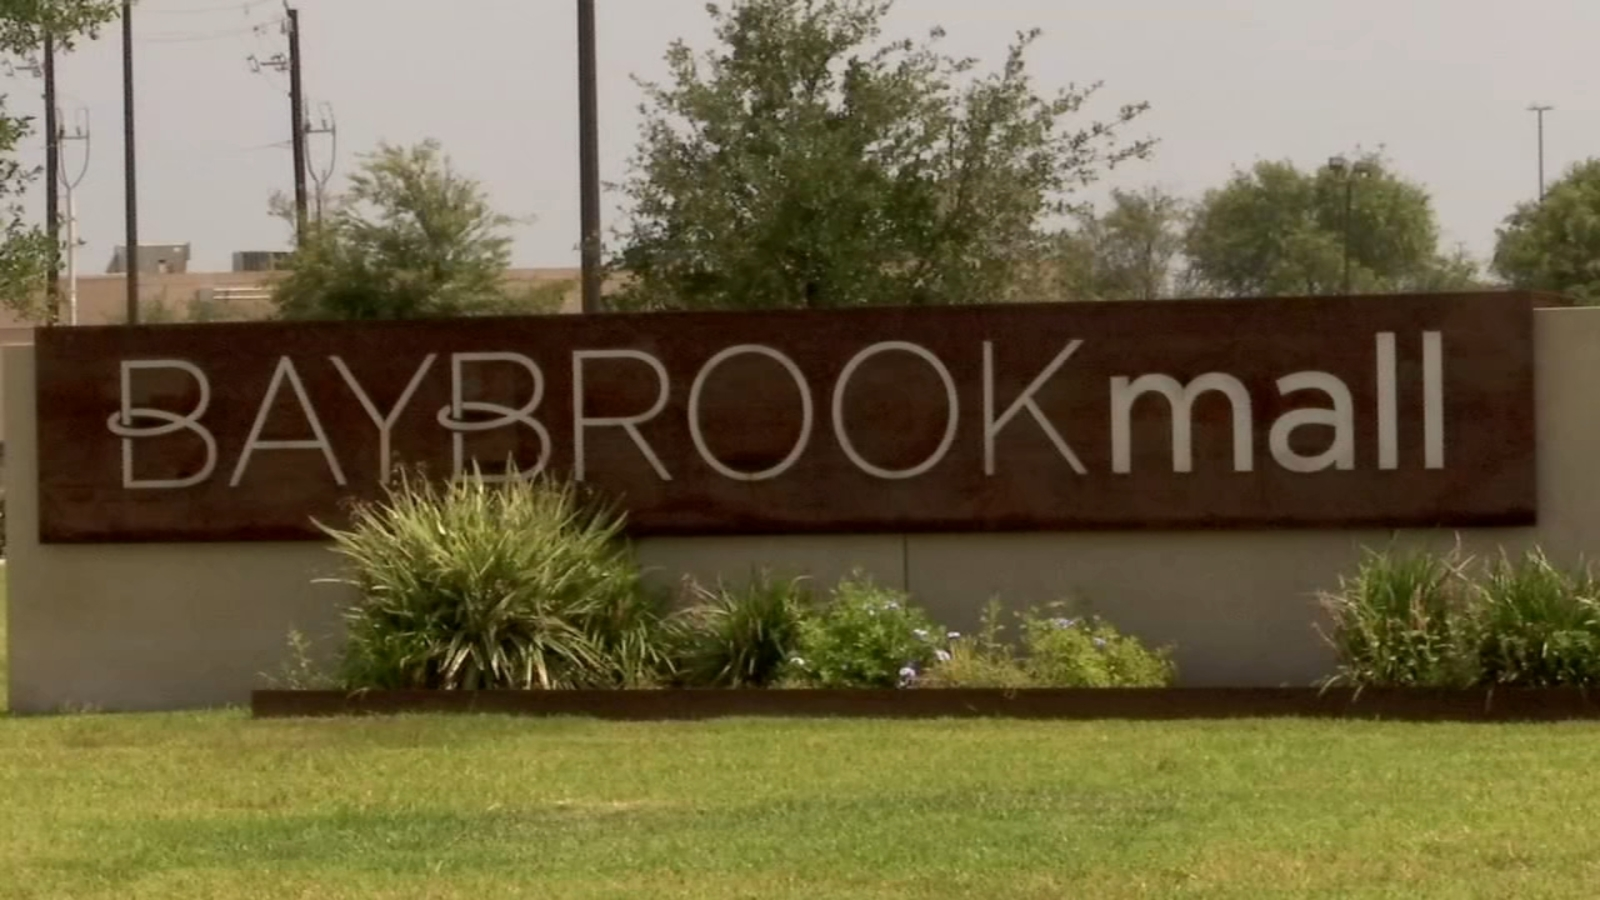 Man with gun sparks scare at Baybrook Mall: police